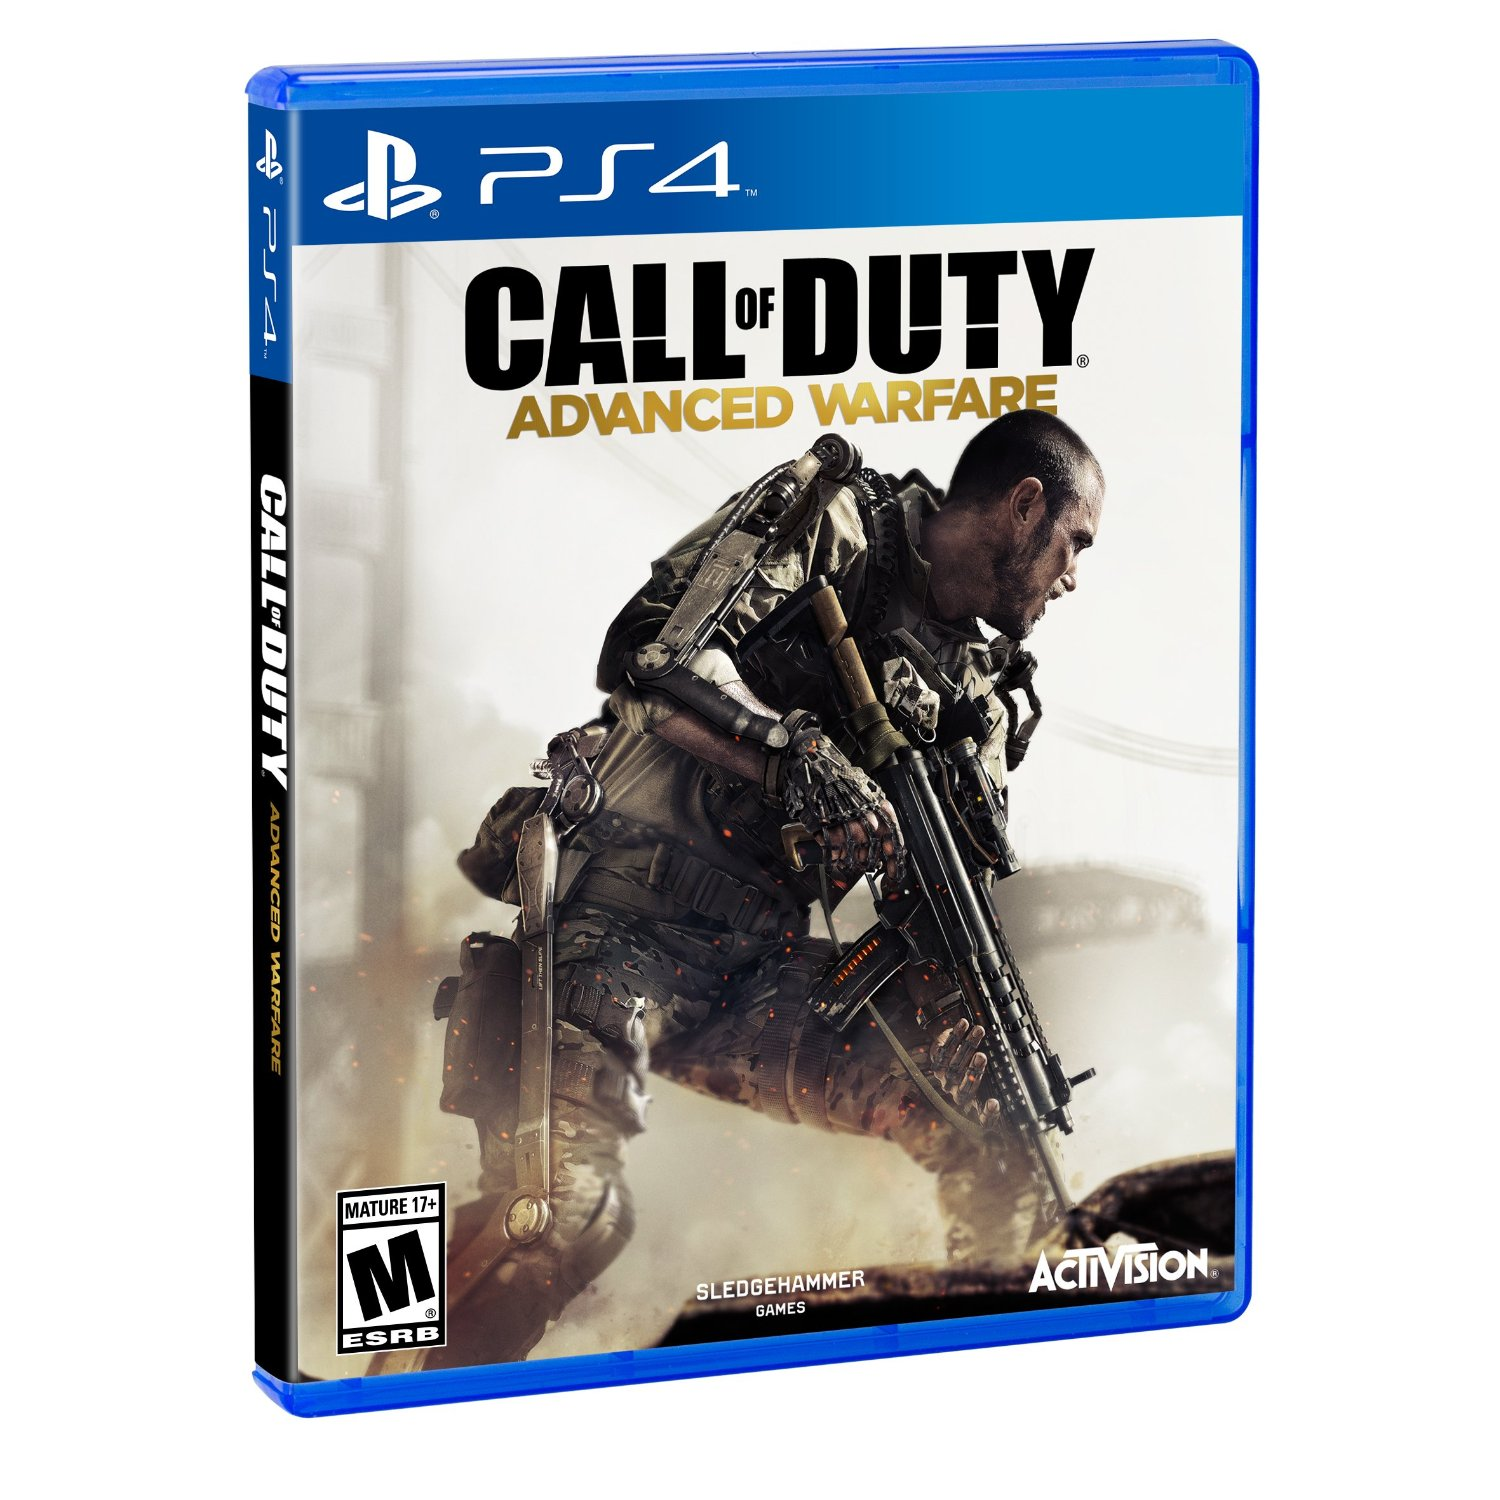 PS4 COD Call of Duty ADVANCED WARFARE em Portugu�s e Espanol